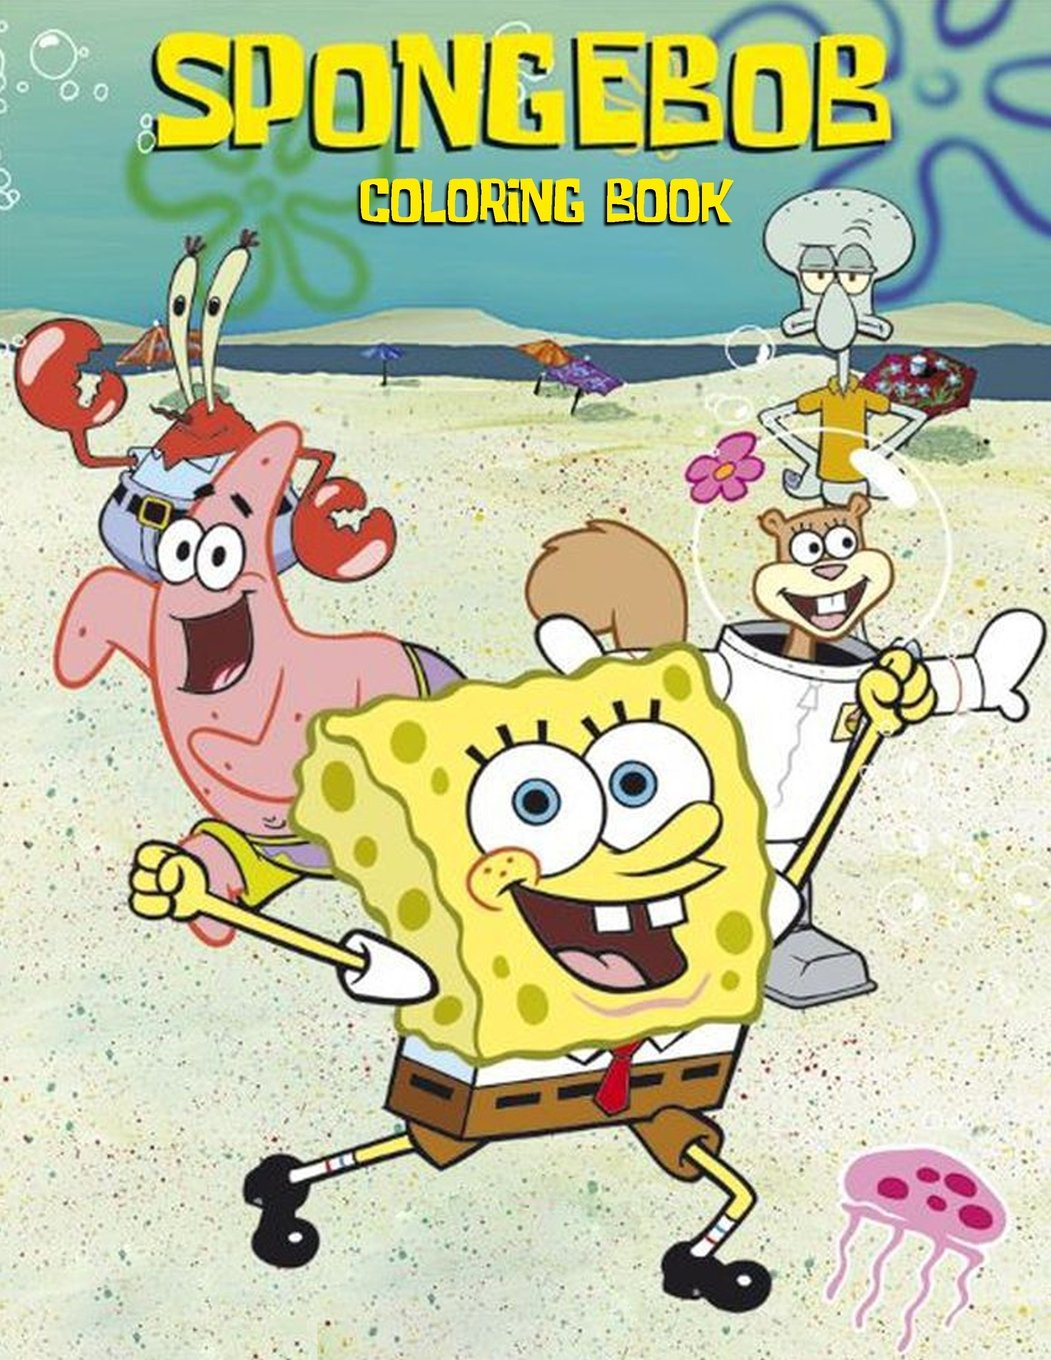 Sponge Bob Coloring Book: Coloring Book for Kids and Adults, Activity Book, Great Starter Book for Children (Coloring Book for Adults Relaxation and for Kids Ages 4-12) ebook